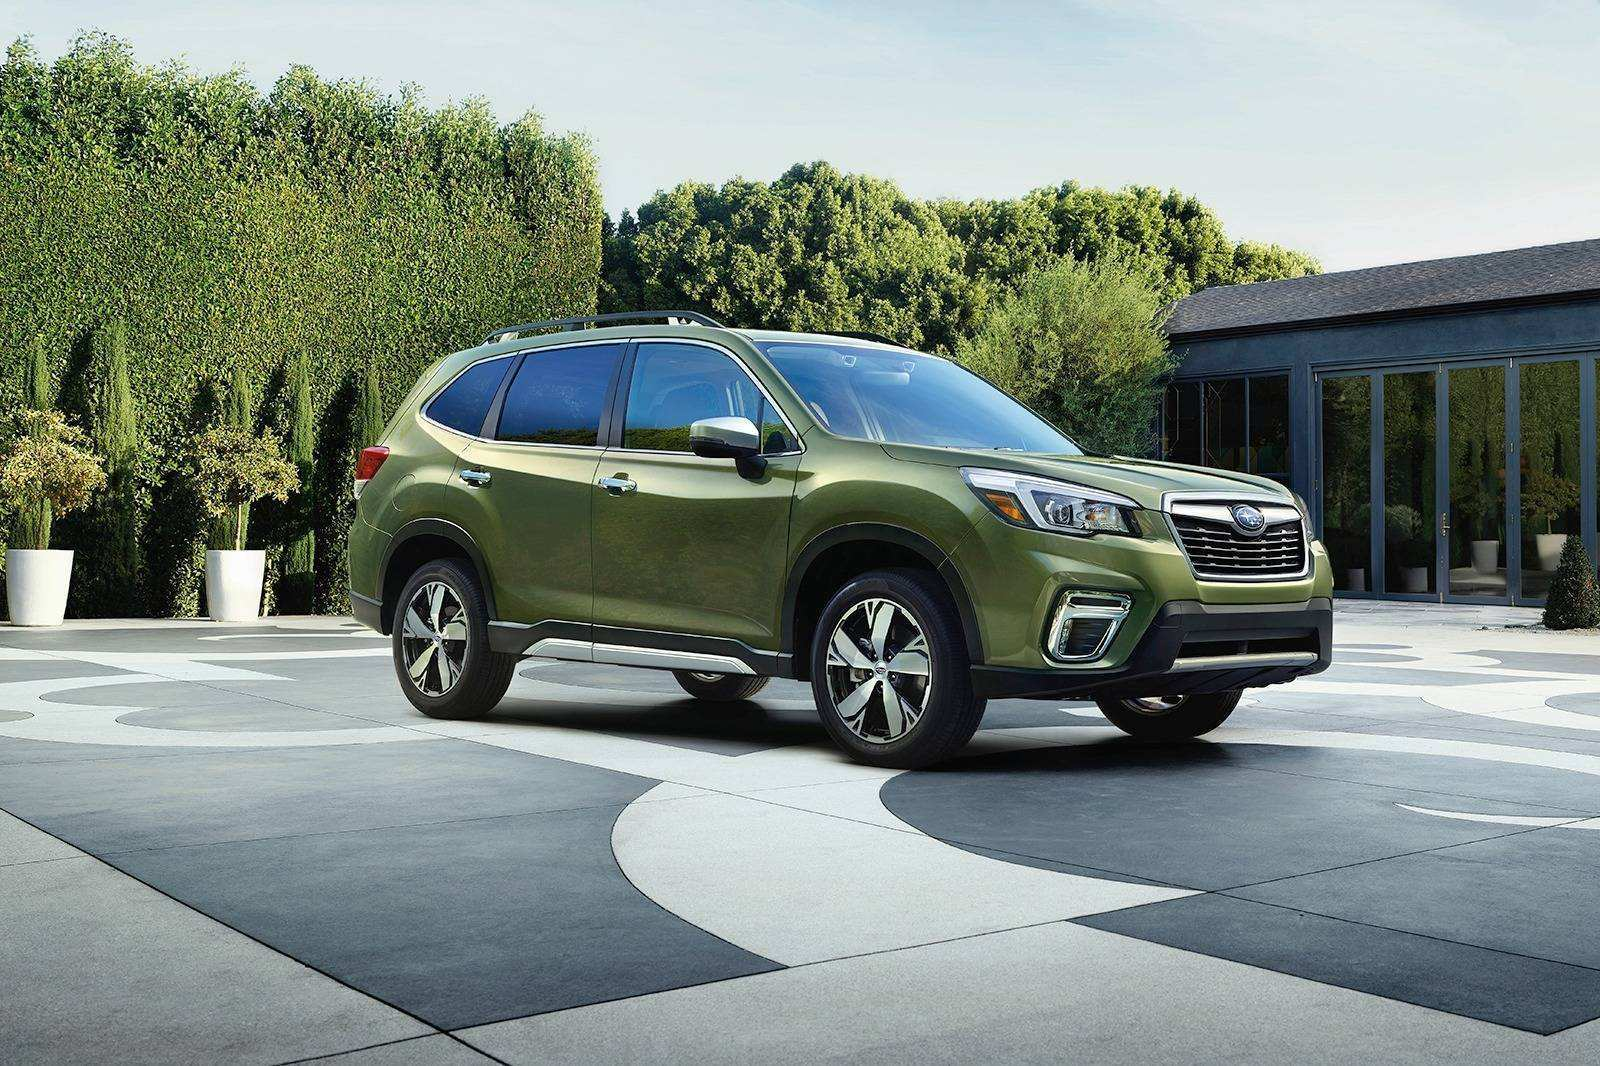 89 The Subaru Forester 2020 Colors Pricing for Subaru Forester 2020 Colors